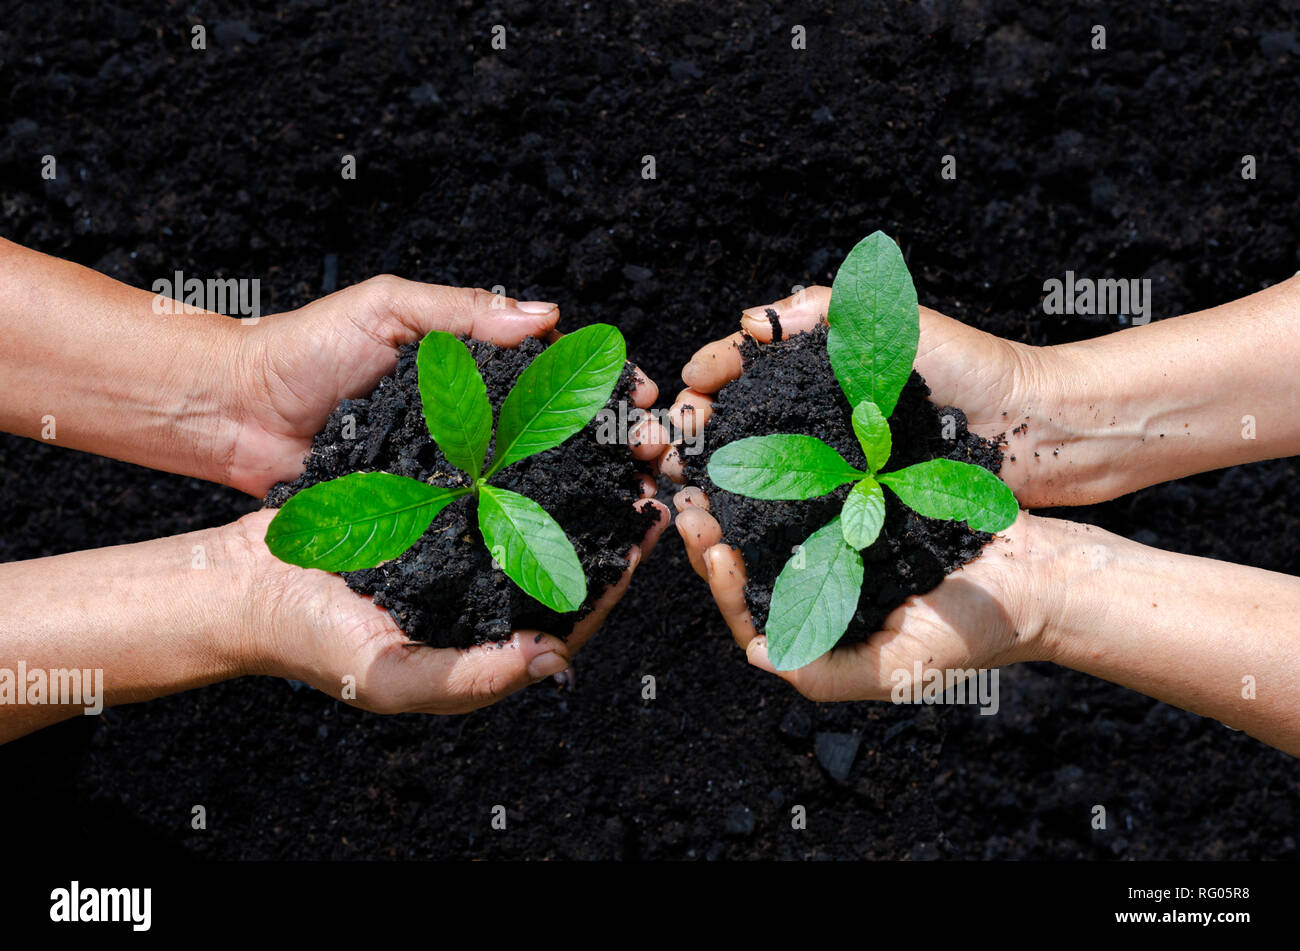 environment Earth Day In the hands of trees growing seedlings. Bokeh green Background Female hand holding tree on nature field grass Forest conservation Stock Photo